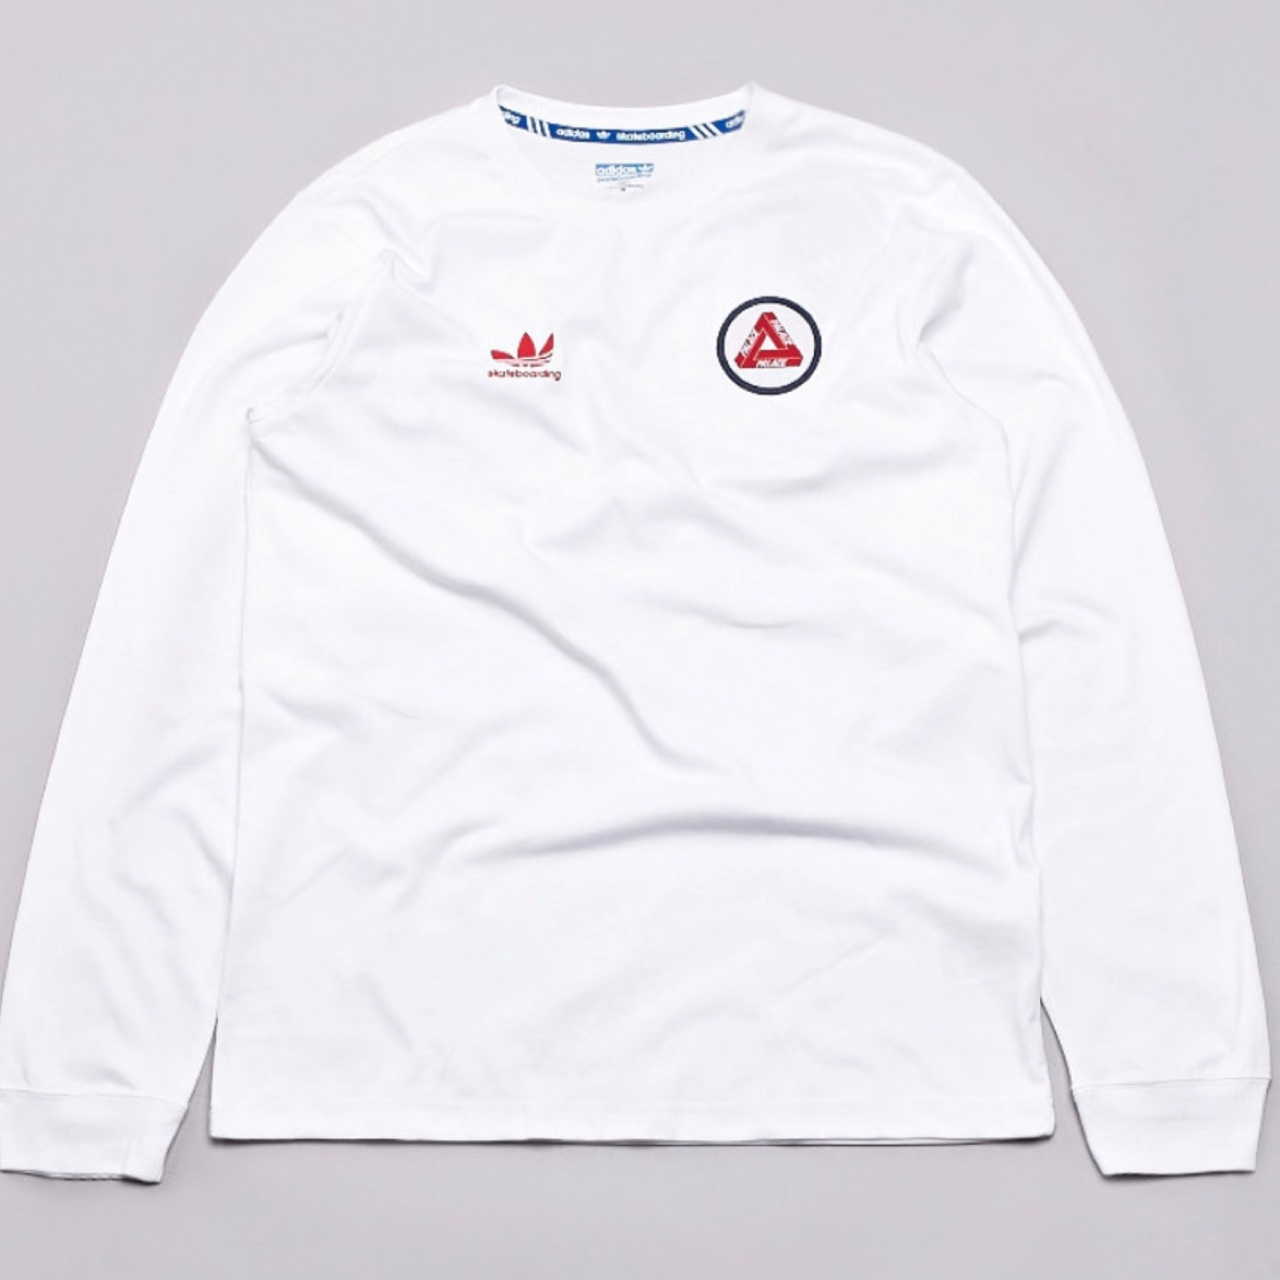 Adidas Adidas X Palace Fairfax Long Sleeve  Grailed